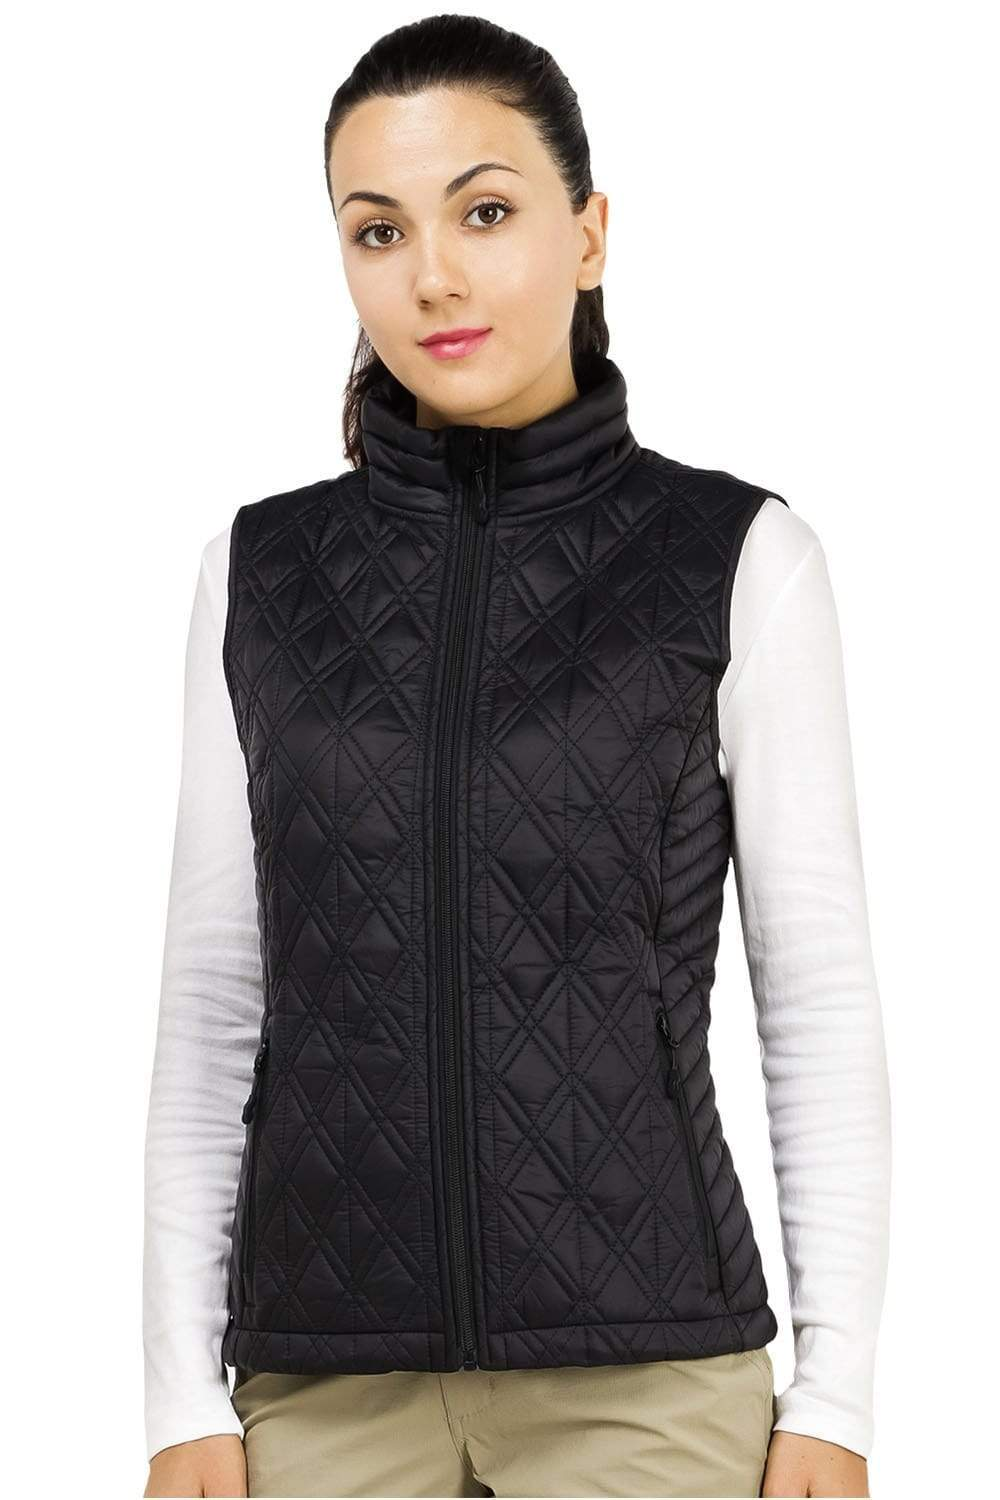 MIER Women's Quilted Vest Padding Lightweight Insulated Puffer Vest With Pockets